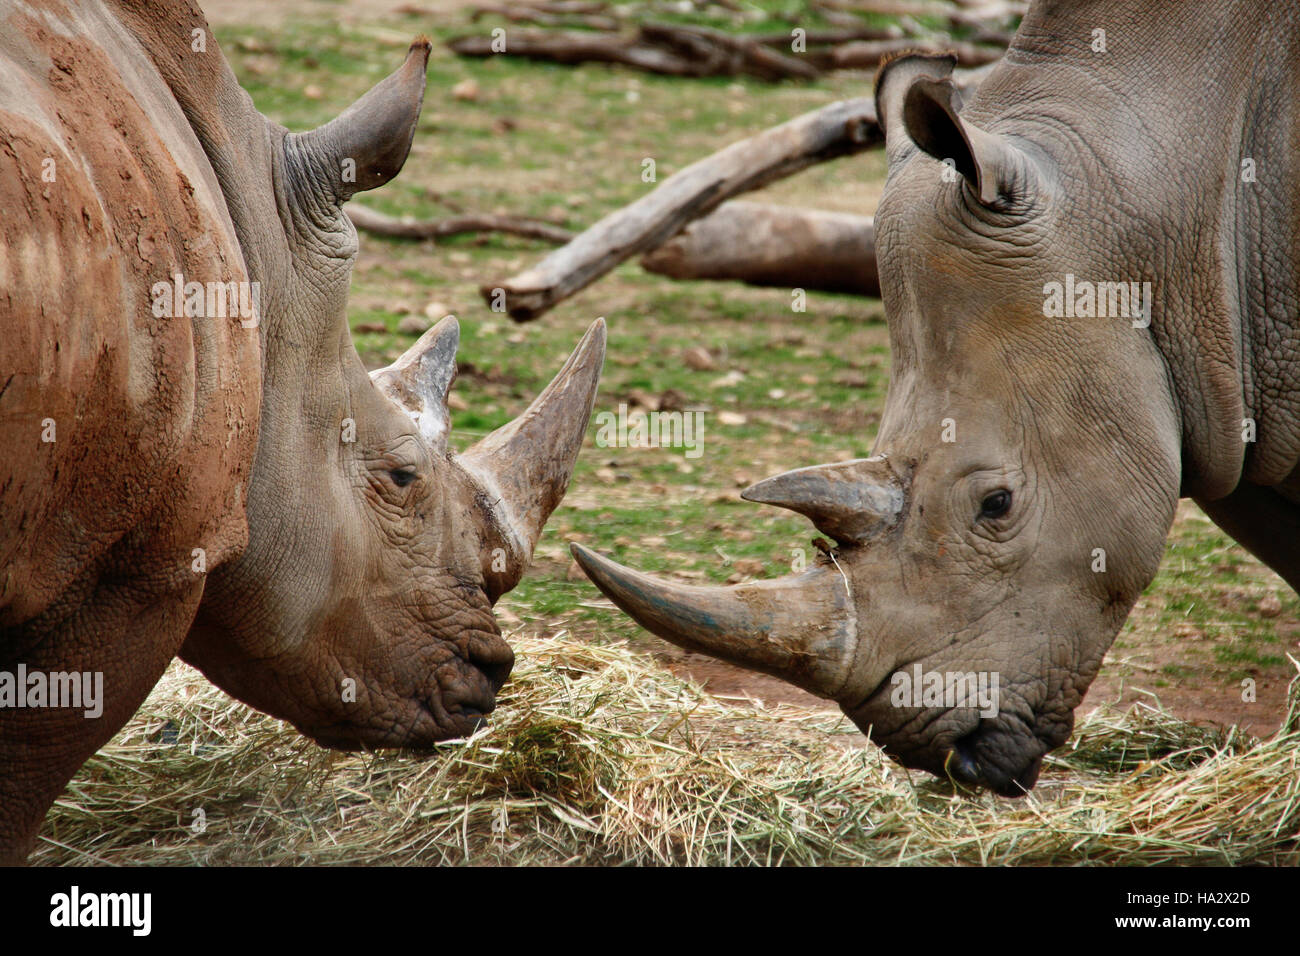 Two Southern White Rhinoceros, South Africa - Stock Photo